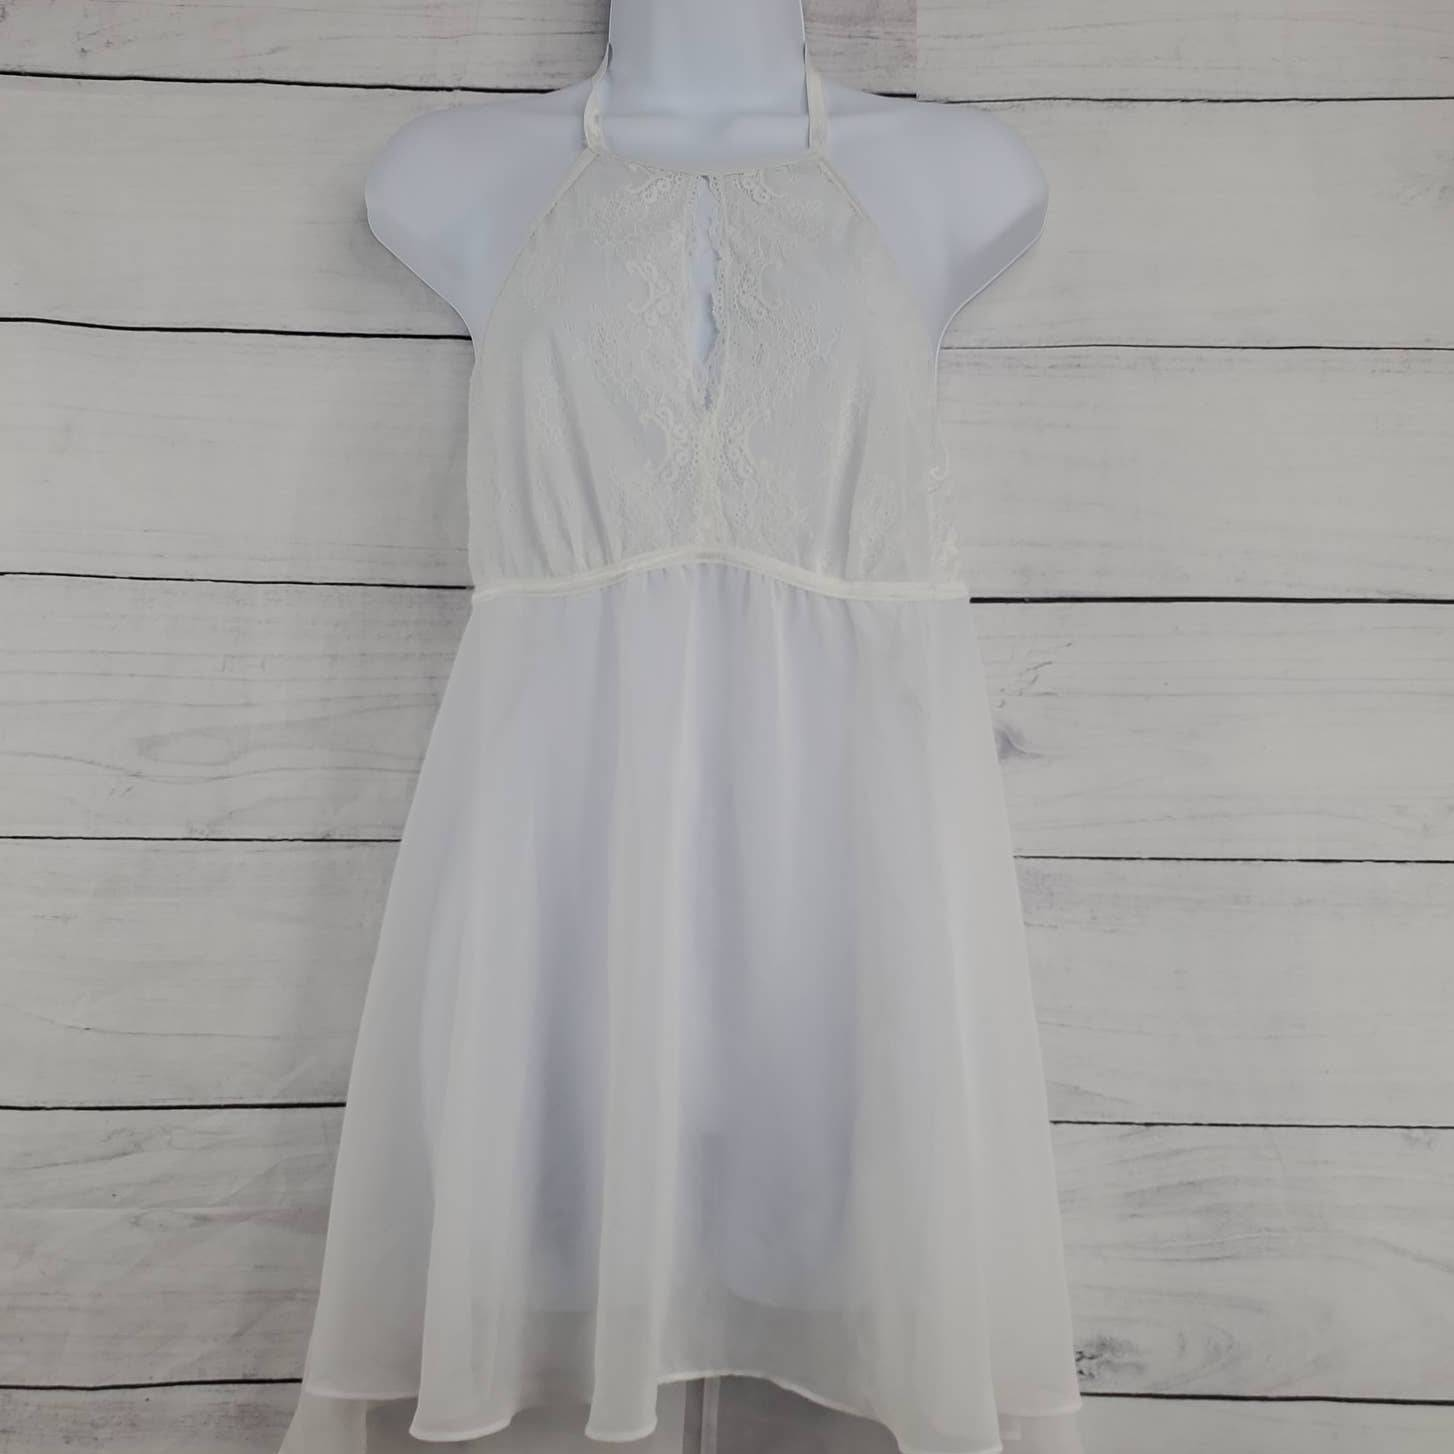 Gilligan O Malley Lace Halter Night Gown